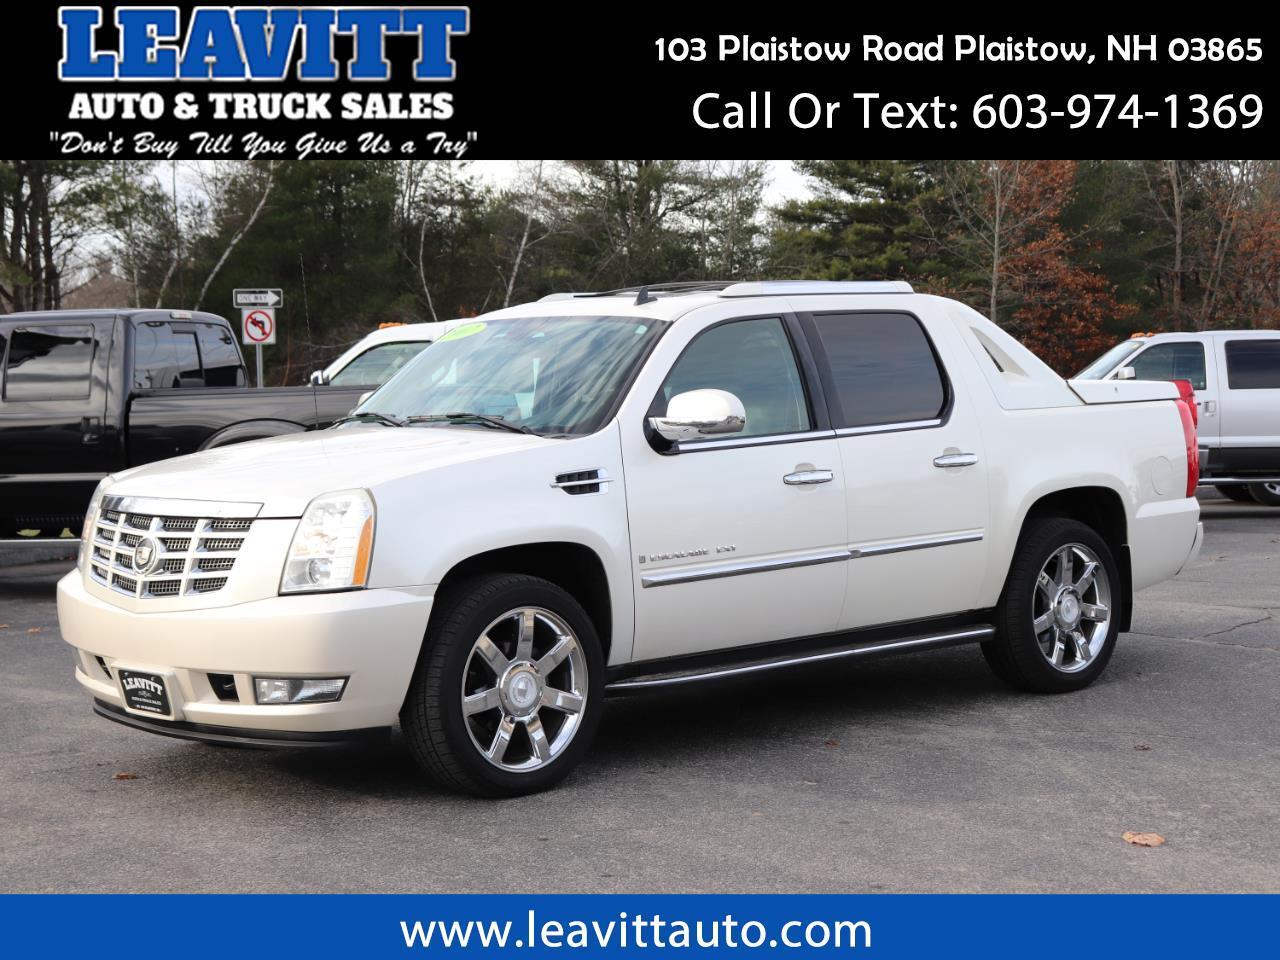 2007 Cadillac Escalade EXT LOADED